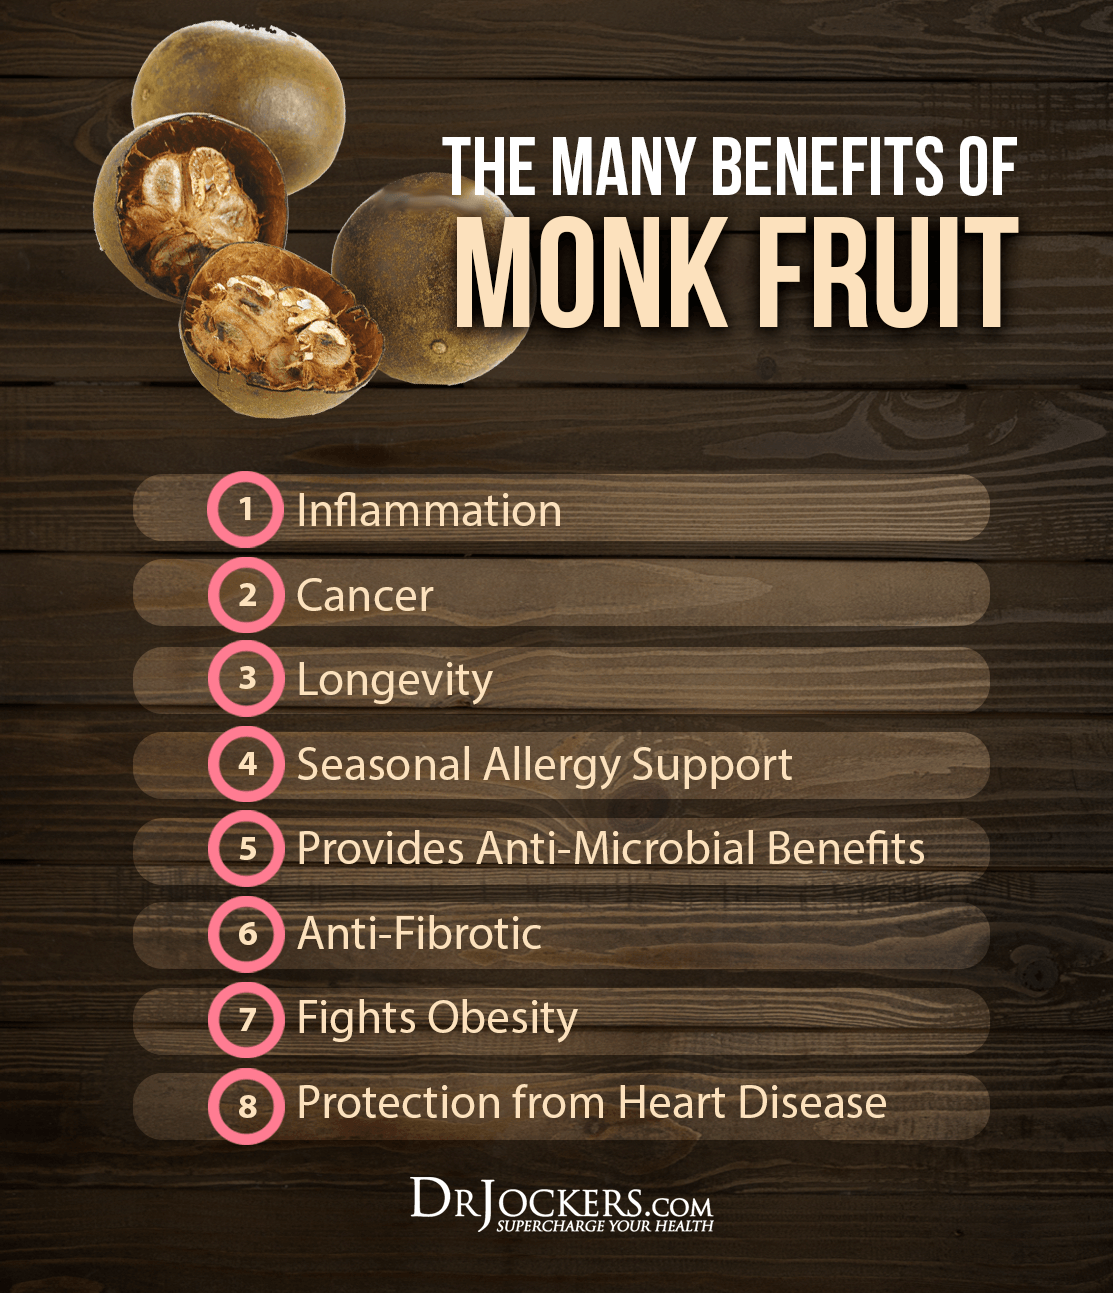 MONKFRUIT_Benefits